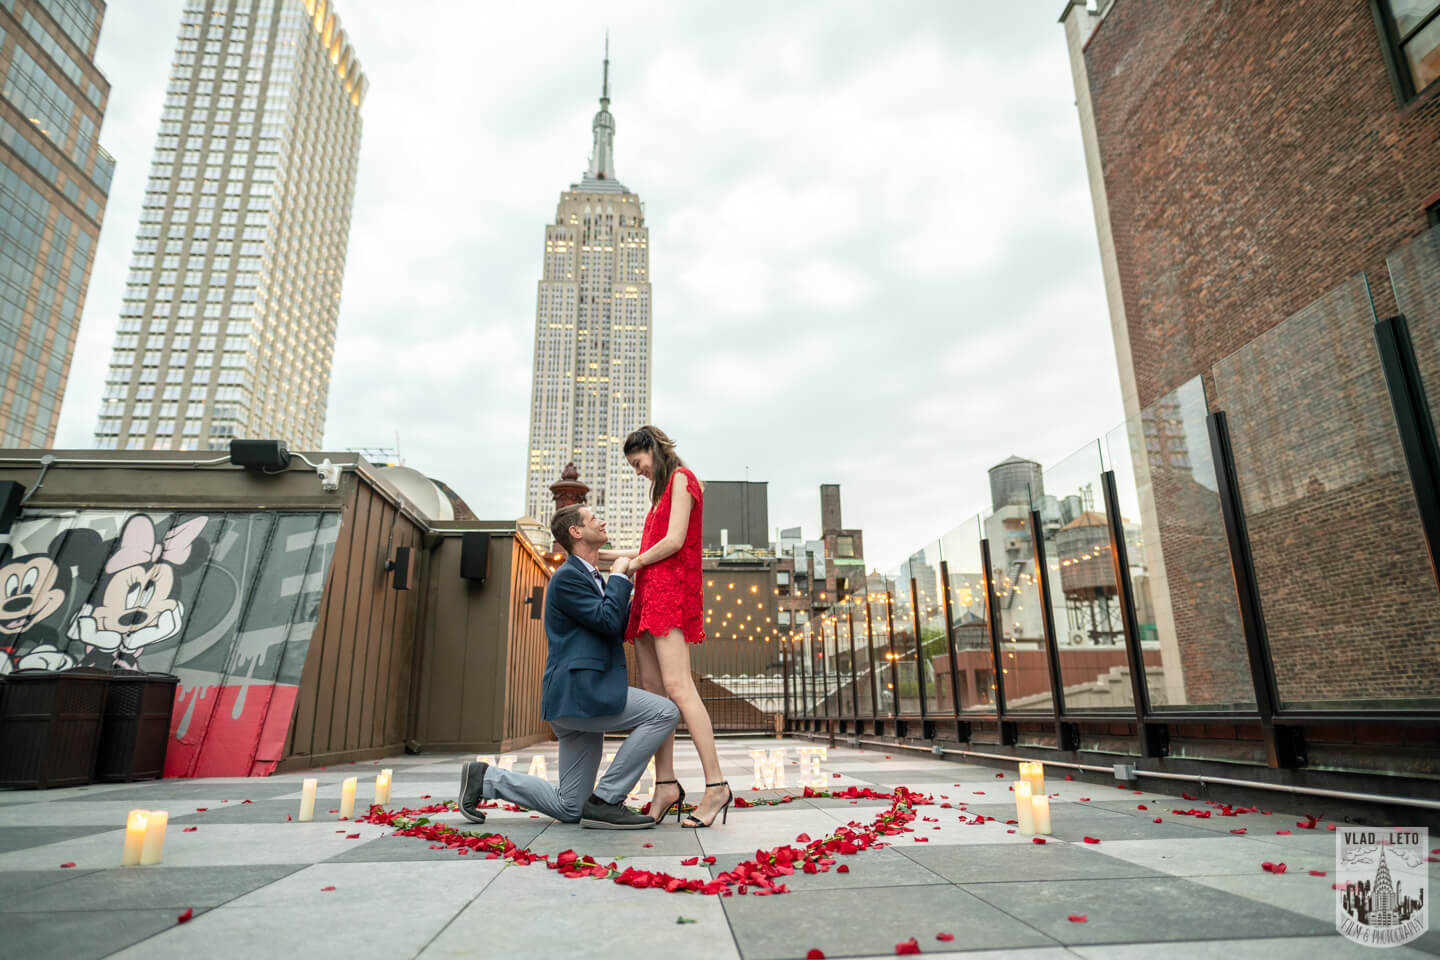 Marriage Proposal on a private rooftop with Empire State building on the background